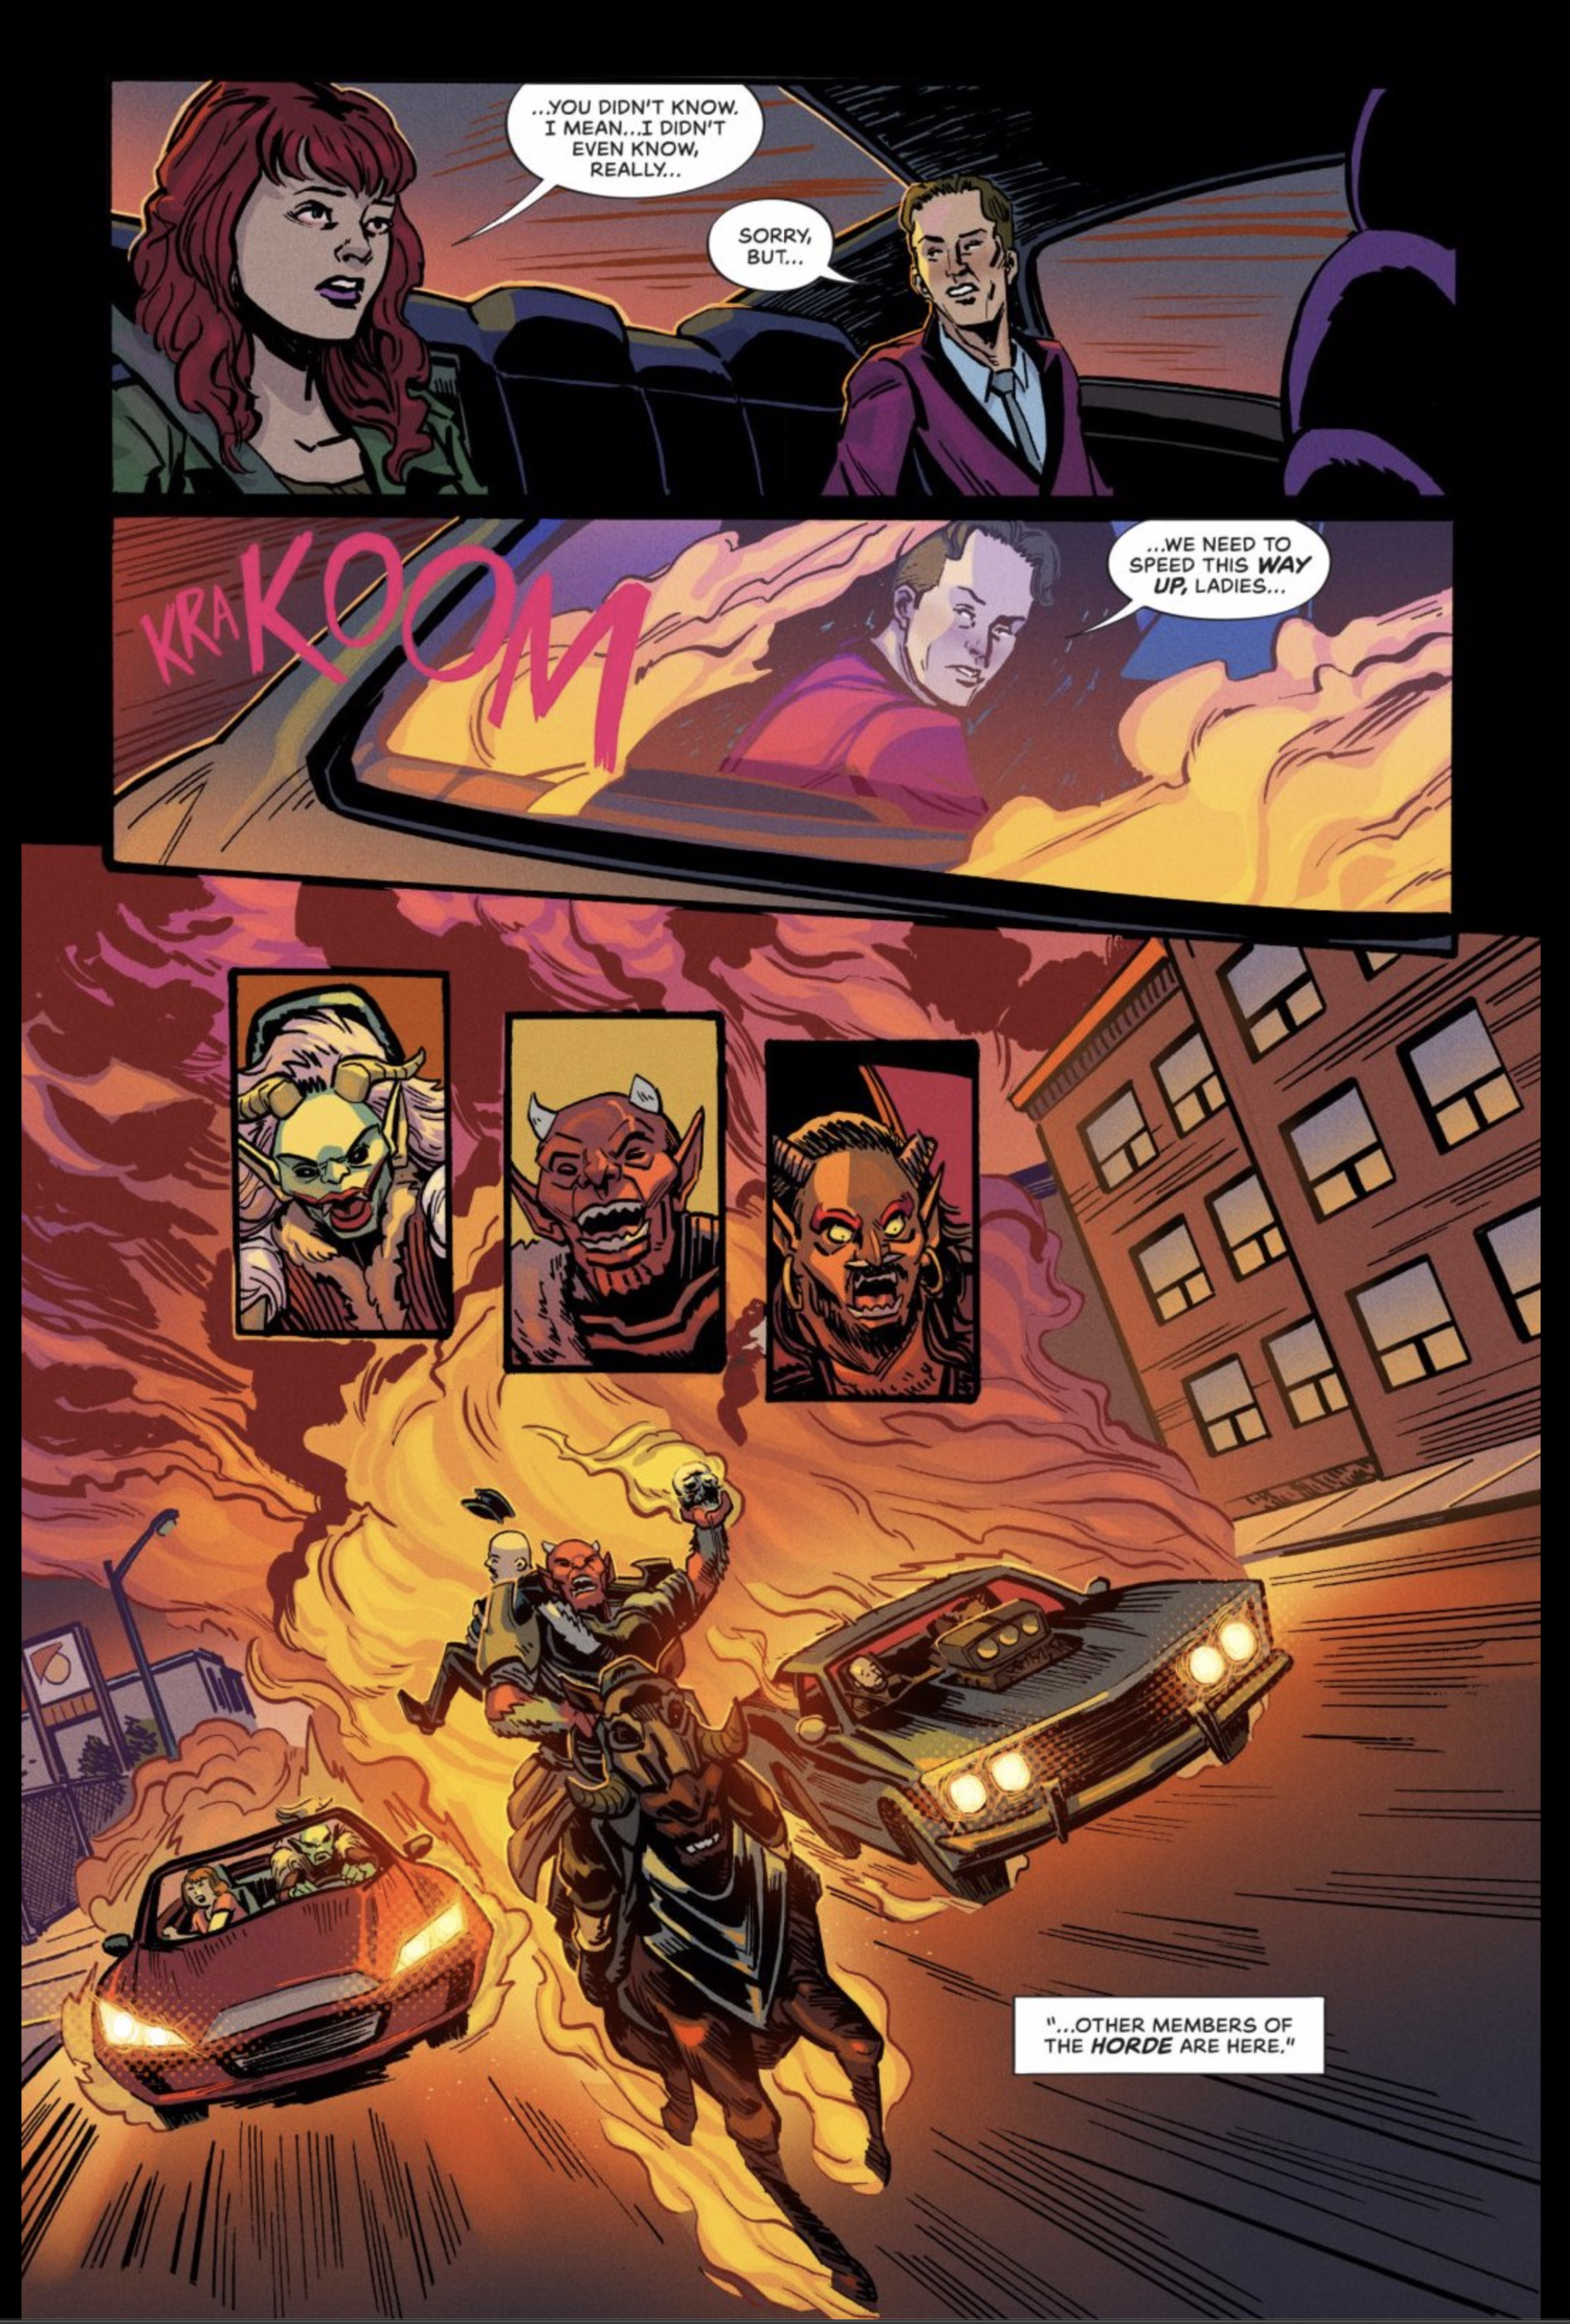 AFTERLIFT page 20, depicting Dumu, Janice, and Suzanna drilling away from demons charing at them with fire.  One demon is on horseback, the rest in two cars.